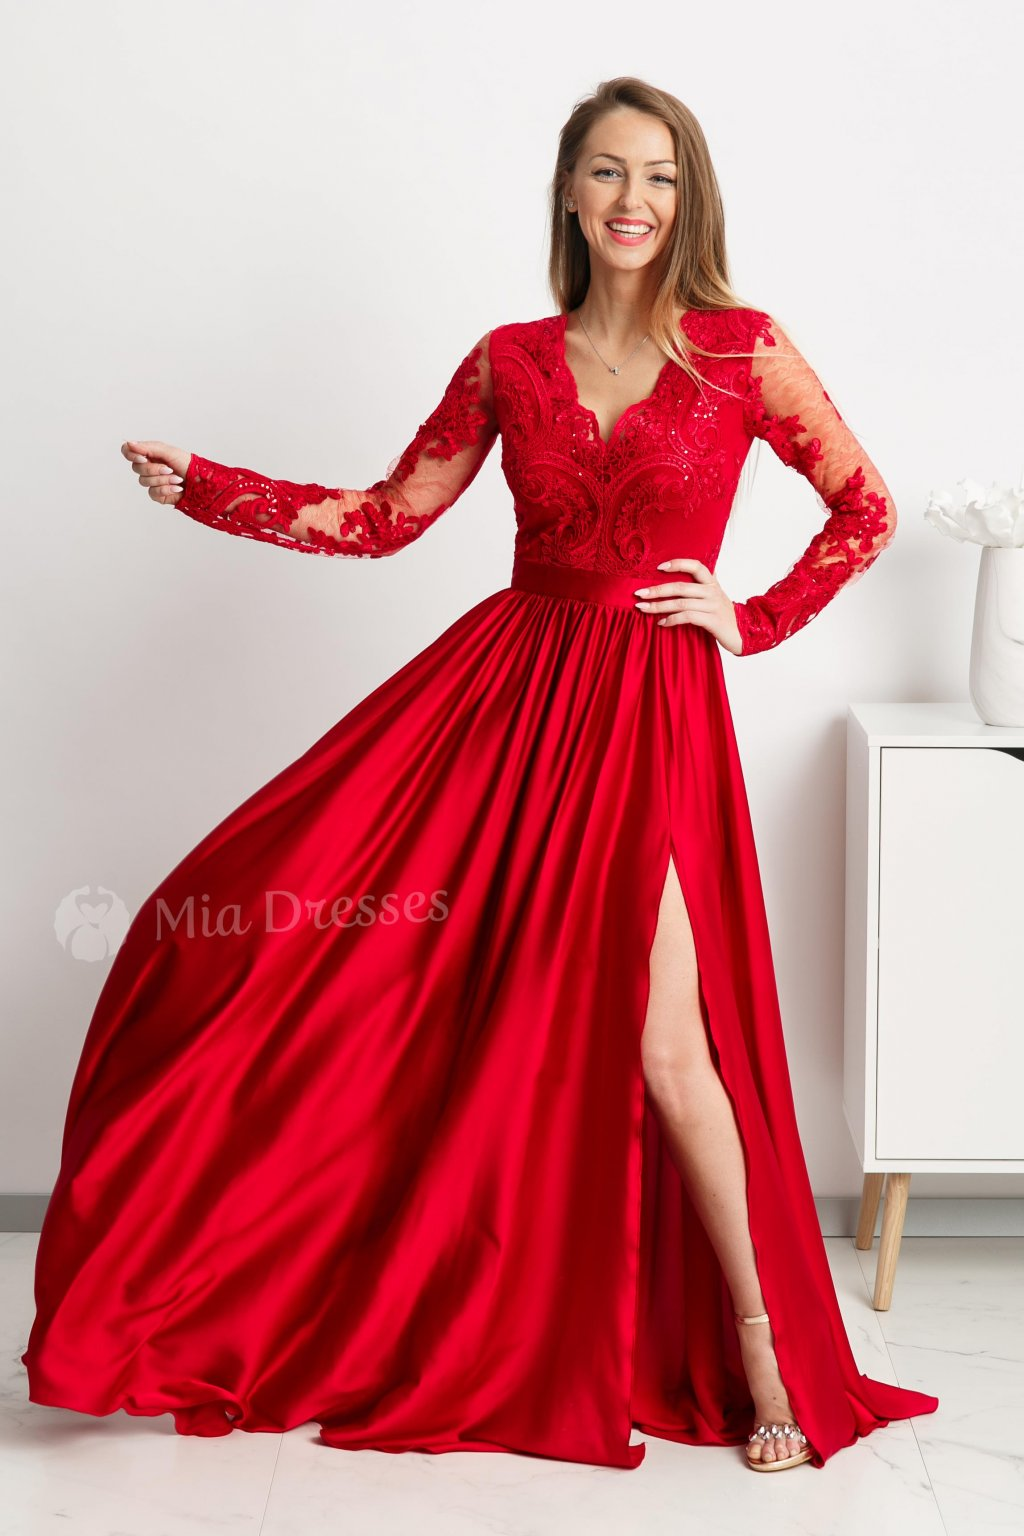 Red lace and satin formal dress